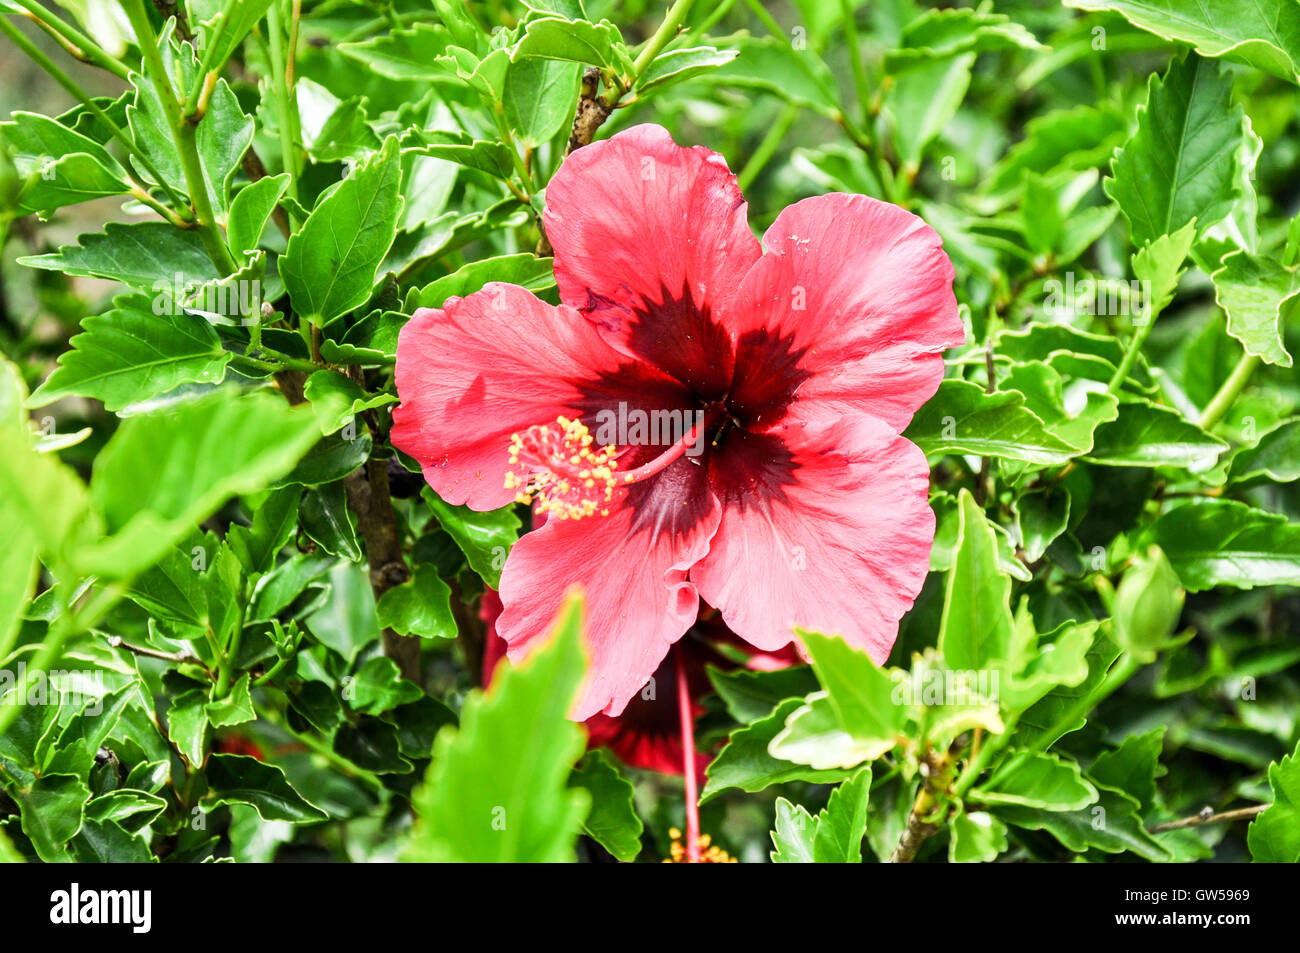 Closeup of vivid two-tone hot pink hibiscus flower blossom with protruding stamen and bright green foliage. - Stock Image